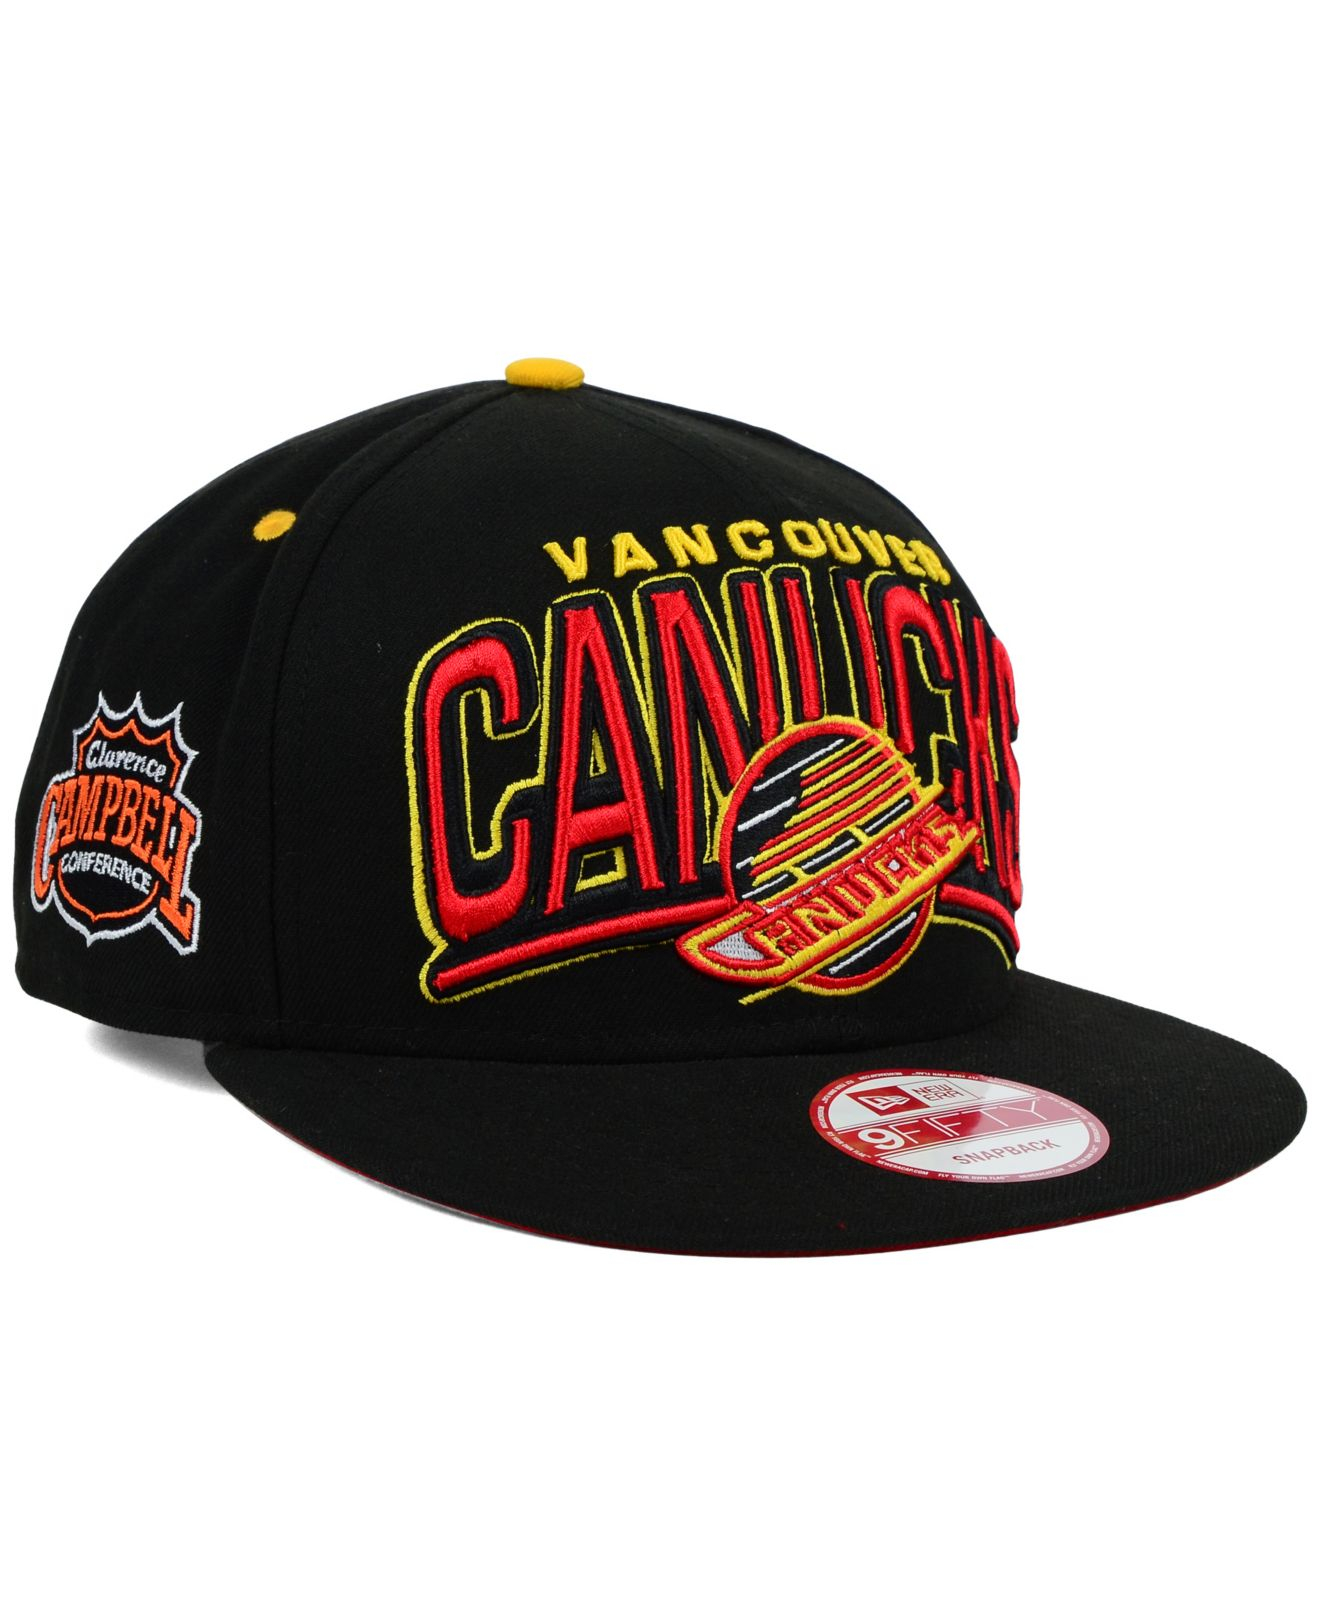 Lyst - Ktz Vancouver Canucks Back Up 9fifty Snapback Cap in Black ... 131a3018dff2